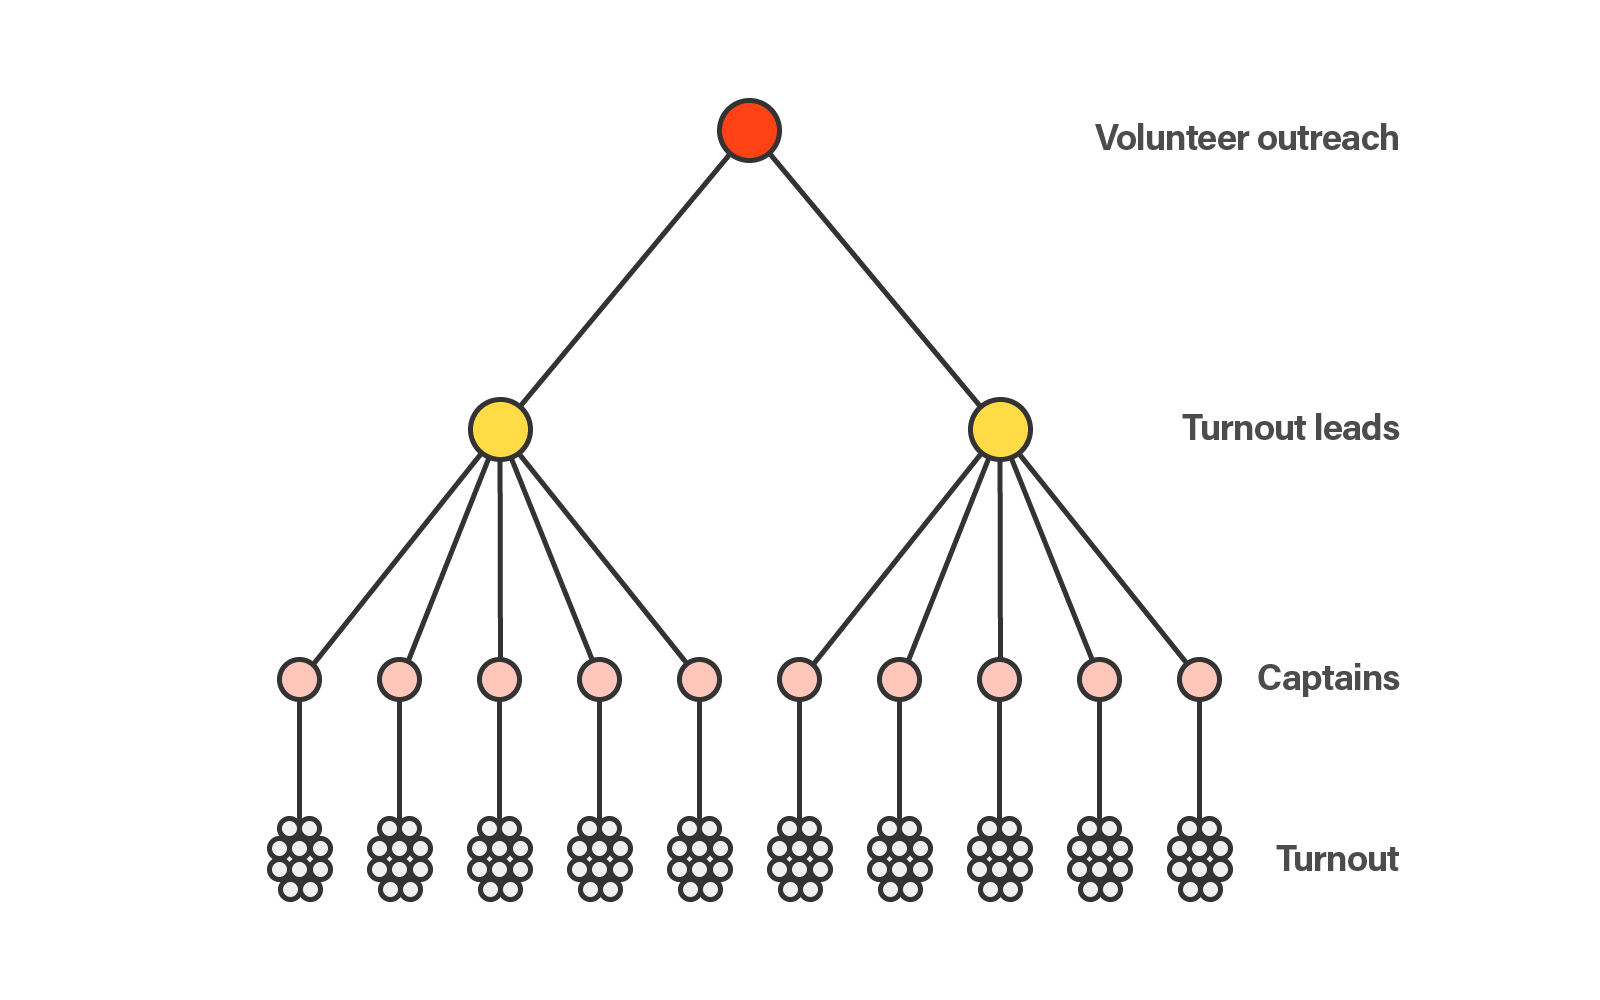 Turnout captains shown by a pyramid of dots